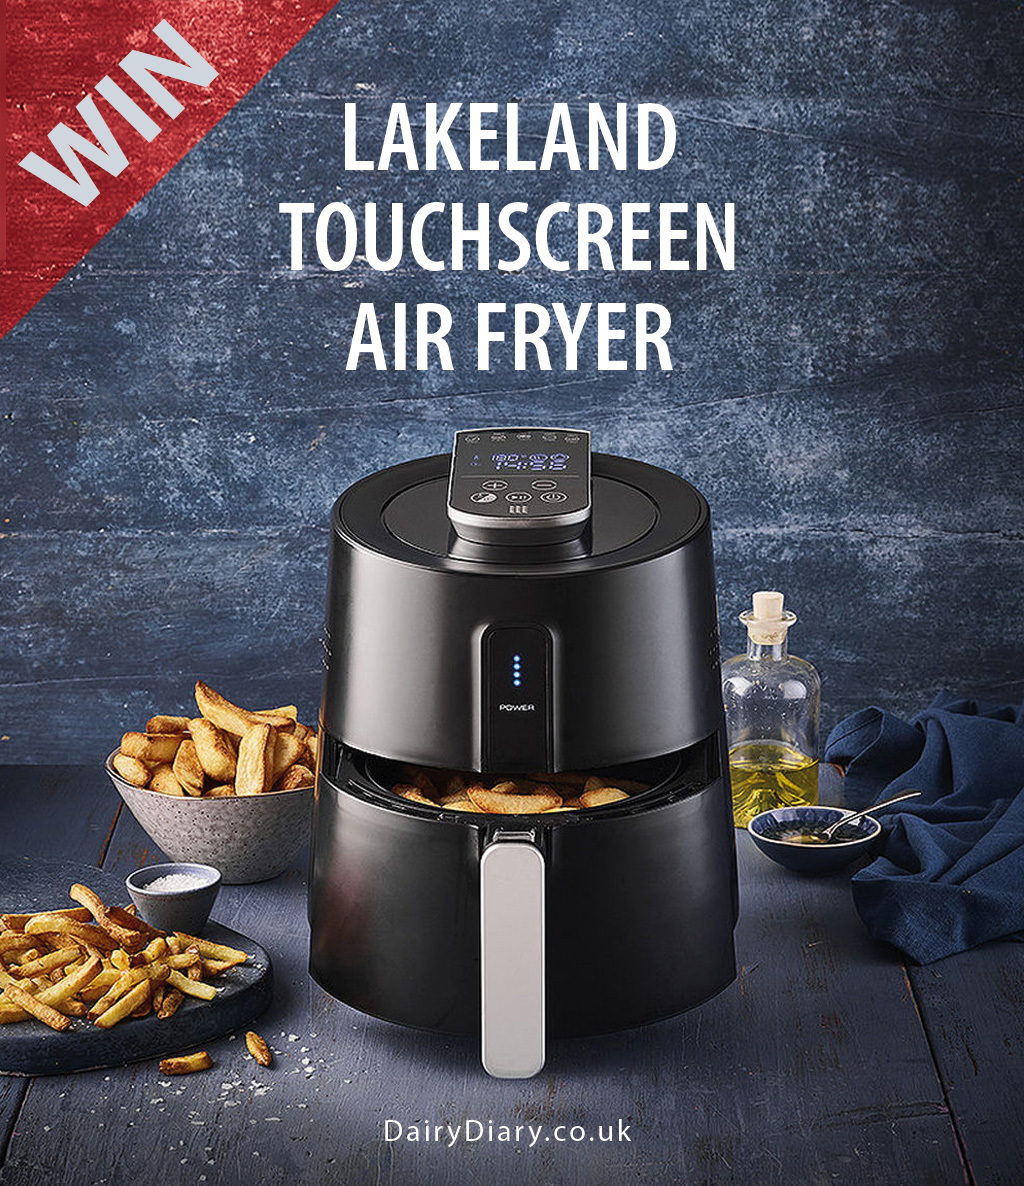 Win a Lakeland Touchscreen Air Fryer with Dairy Diary